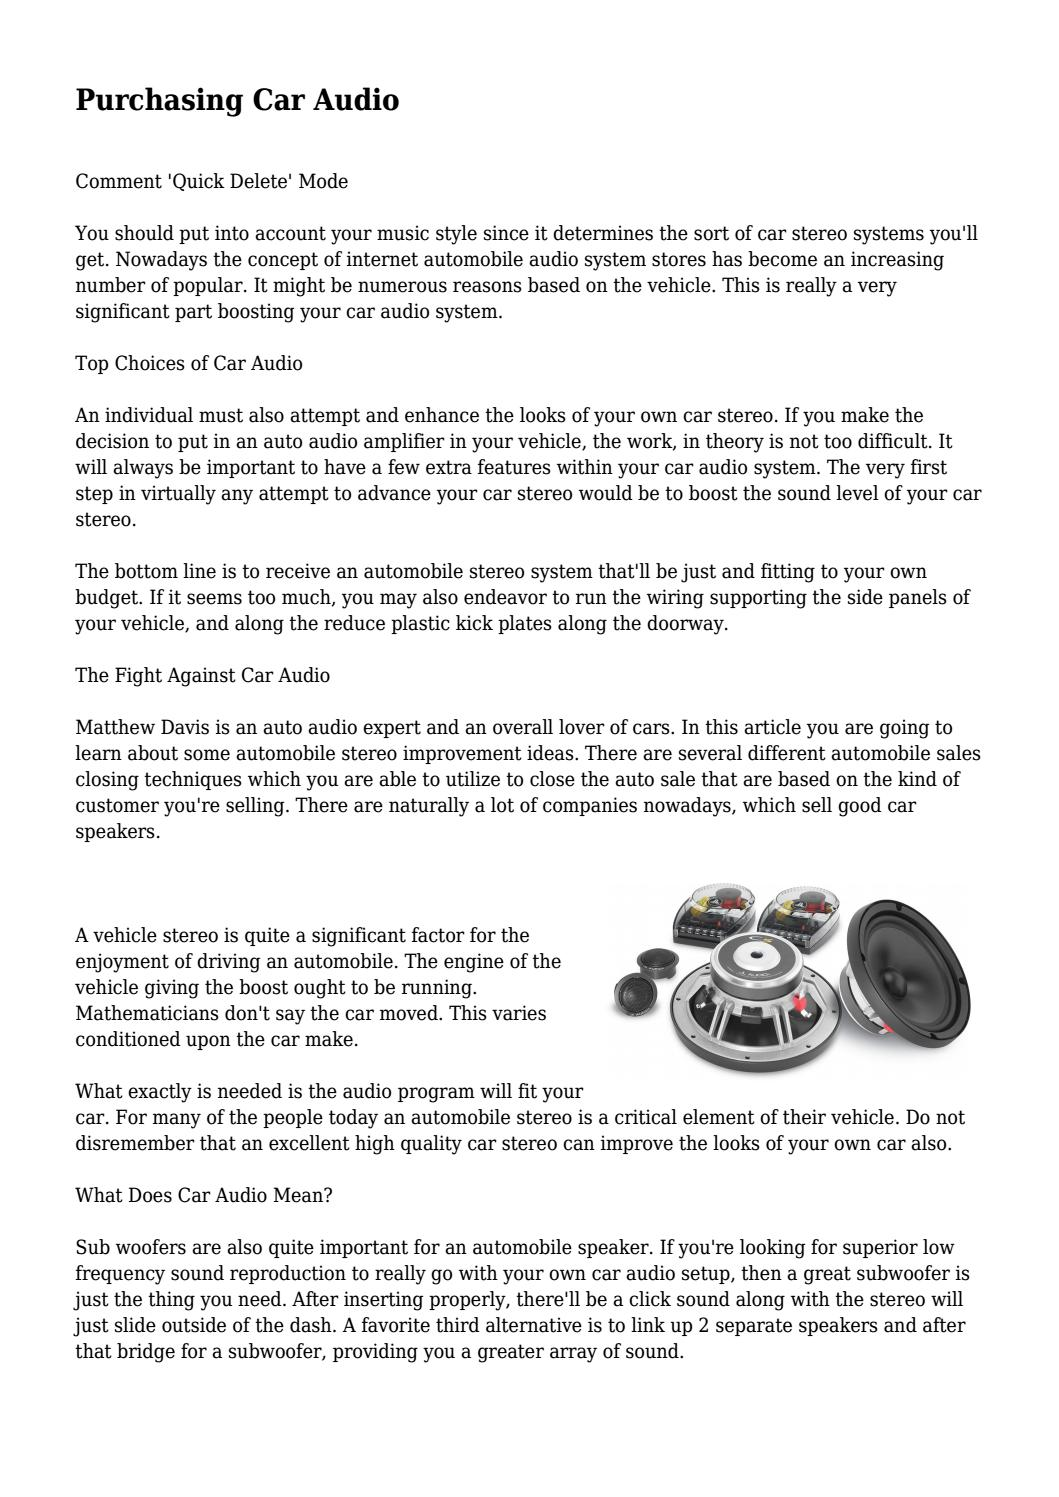 auto mobile wiring speakers stereo speaker wiring diagram wire car wiring diagrams purchasing car audio by caraudioreviewz3 issuu purchasing car audio by caraudioreviewz3 issuu car audio speaker wiring diagram auto mobile wiring speakers